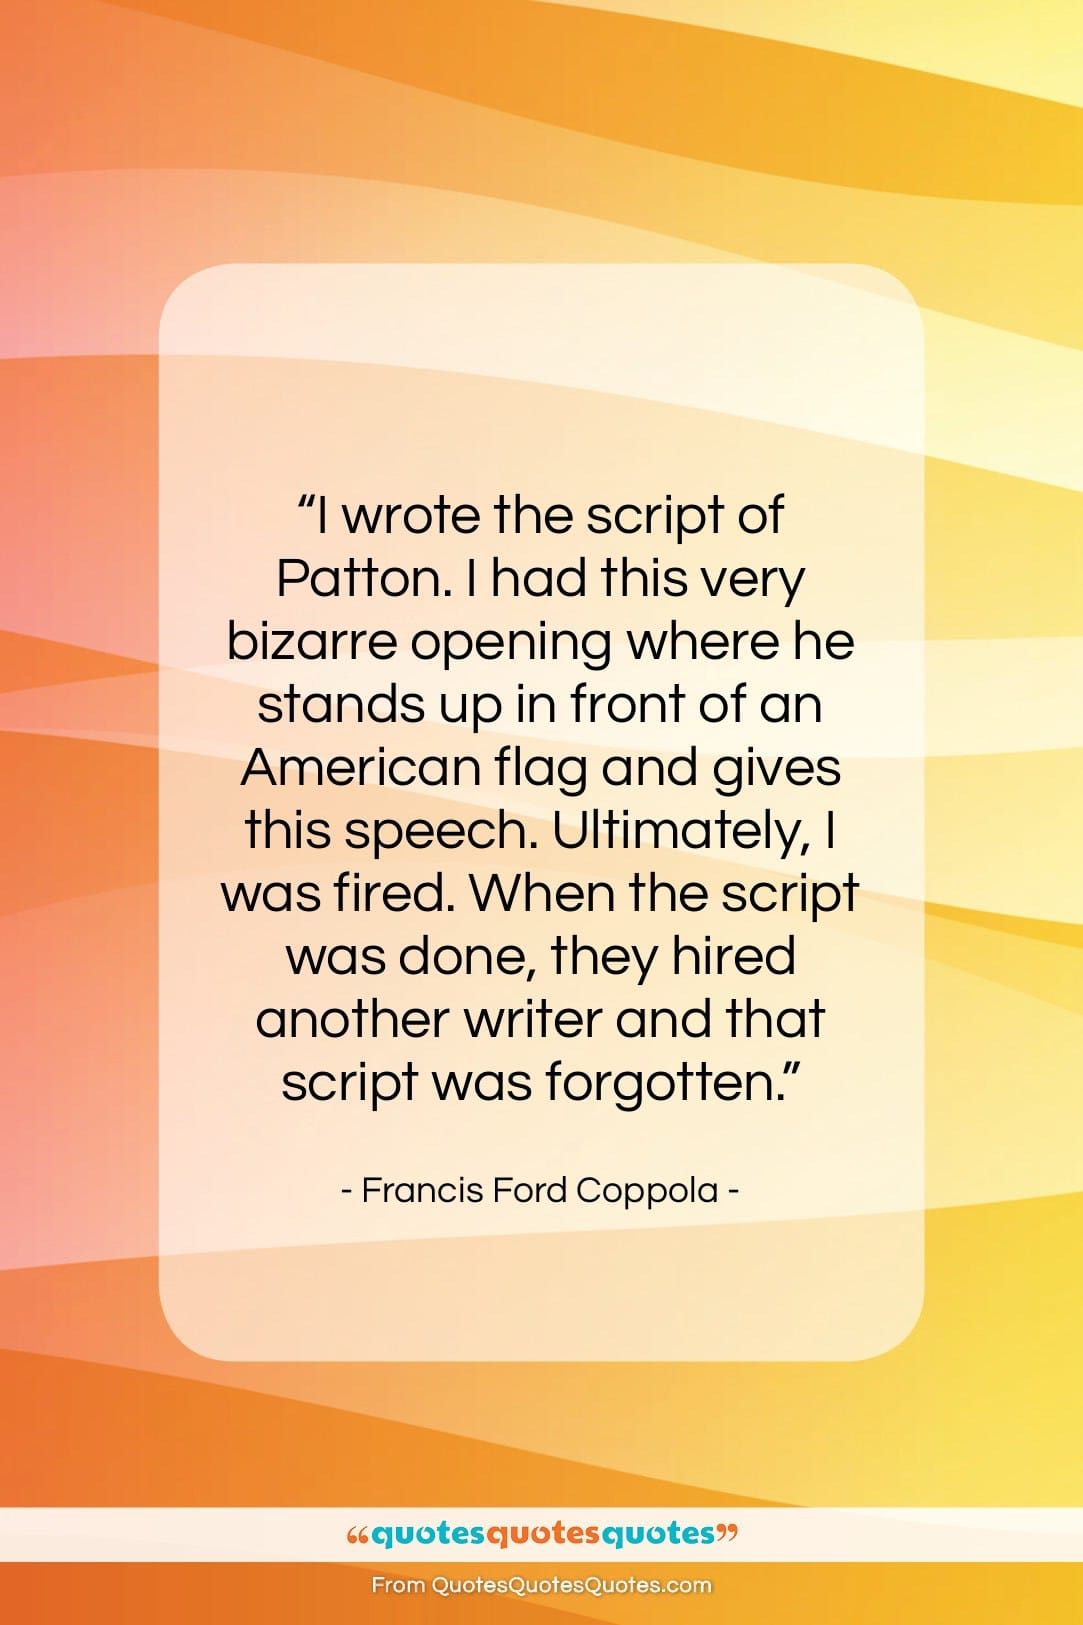 """Francis Ford Coppola quote: """"I wrote the script of Patton. I…""""- at QuotesQuotesQuotes.com"""